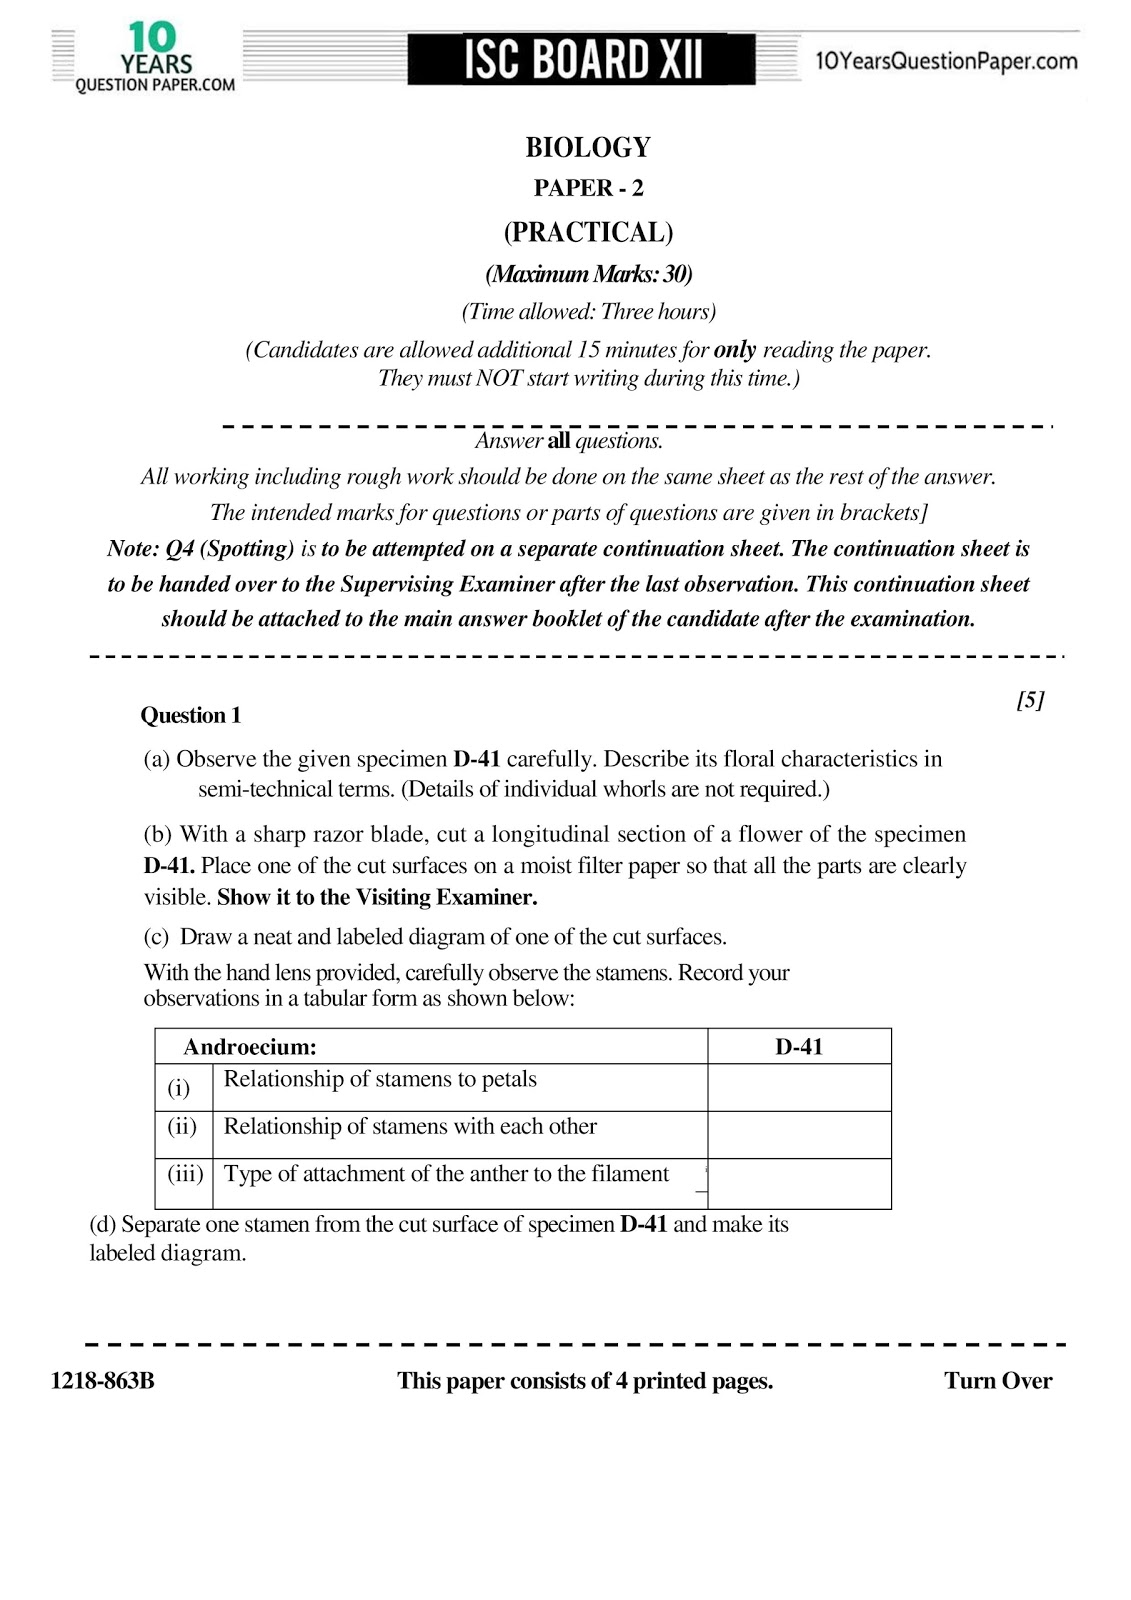 isc 2018 class 12th biology practical question paper